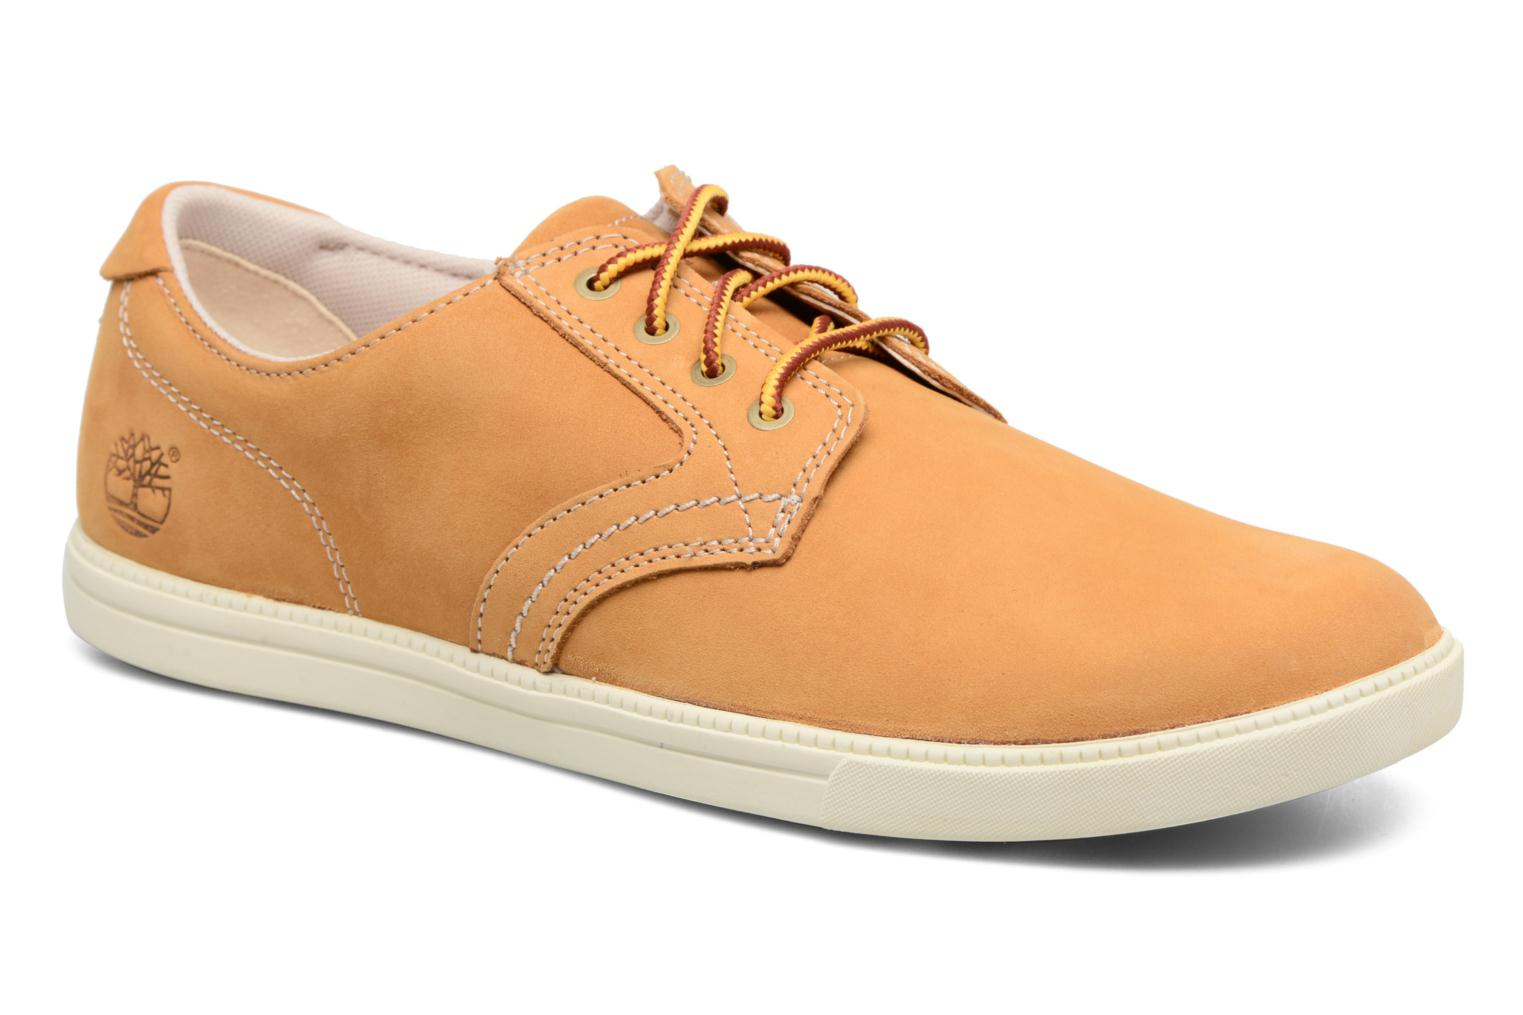 sneakers-fulk-oxford-by-timberland